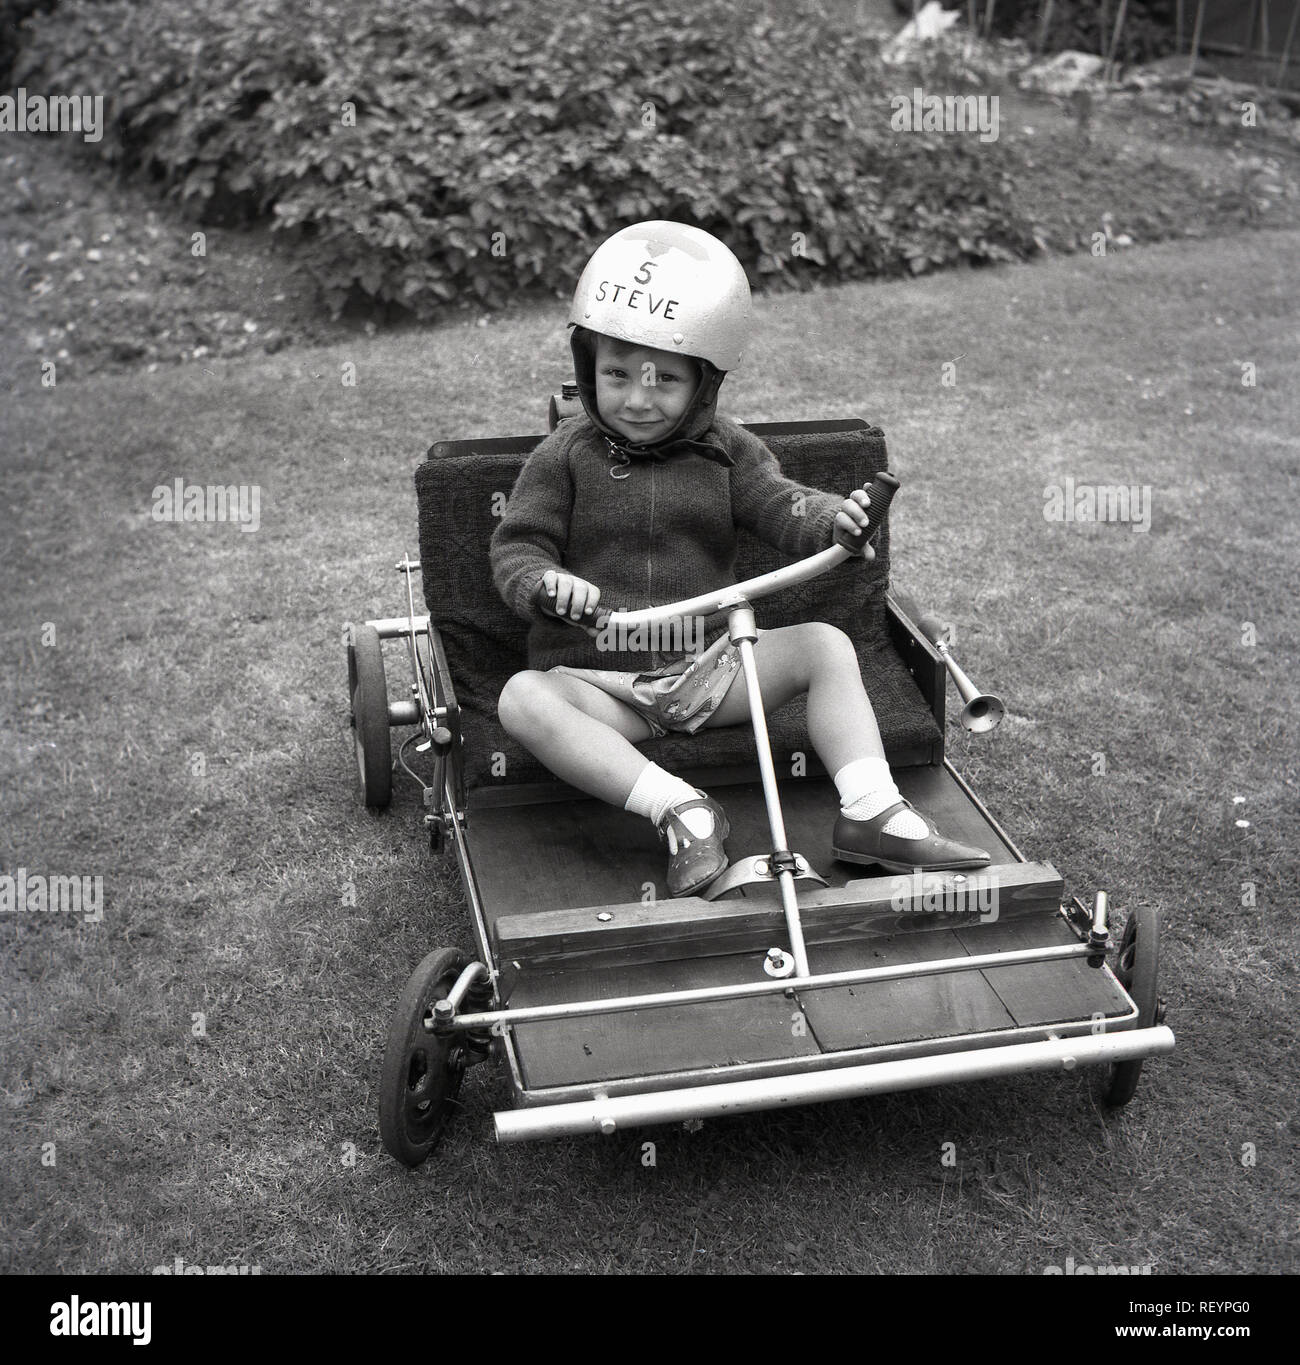 1967, historical, young boy in a back garden sitting in a